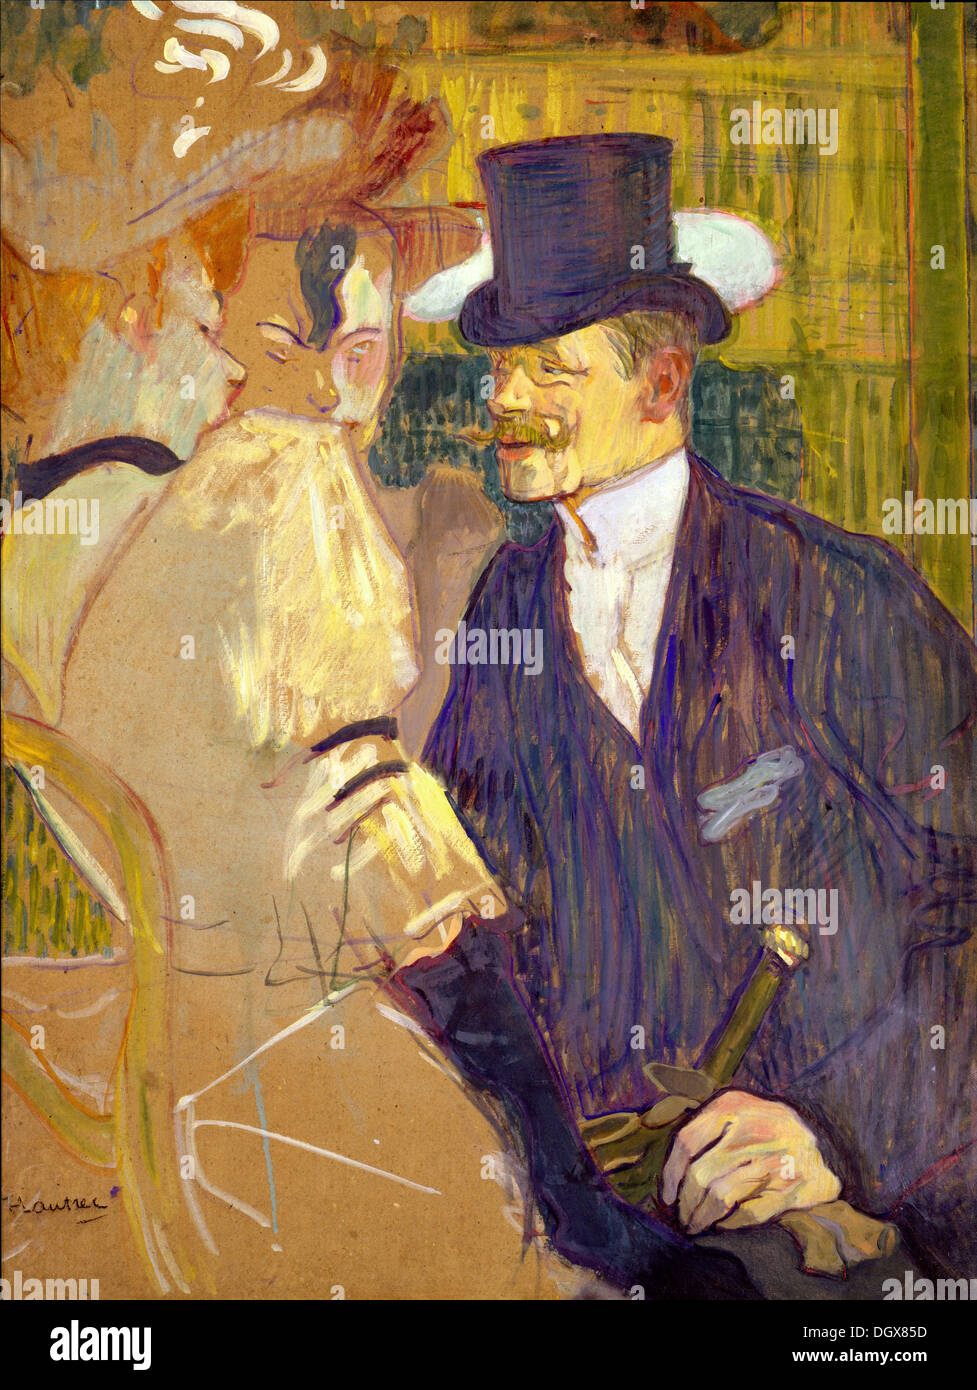 The Englishman (William Tom Warrener) at the Moulin Rouge - by Henri de Toulouse-Lautrec, 1892 - Stock Image